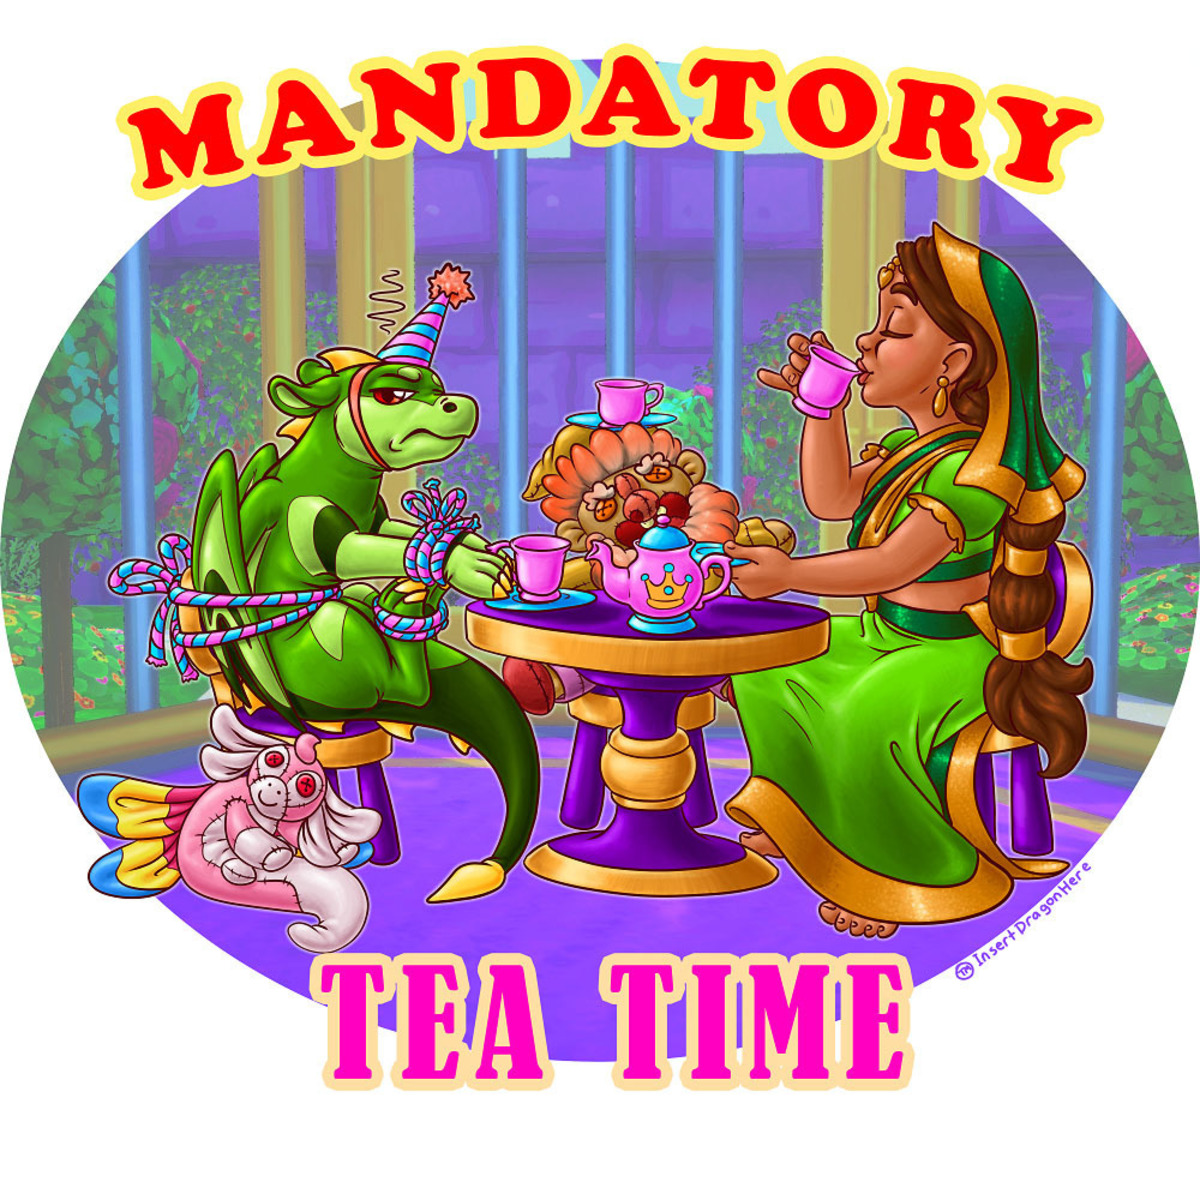 Mandatory Tea Time